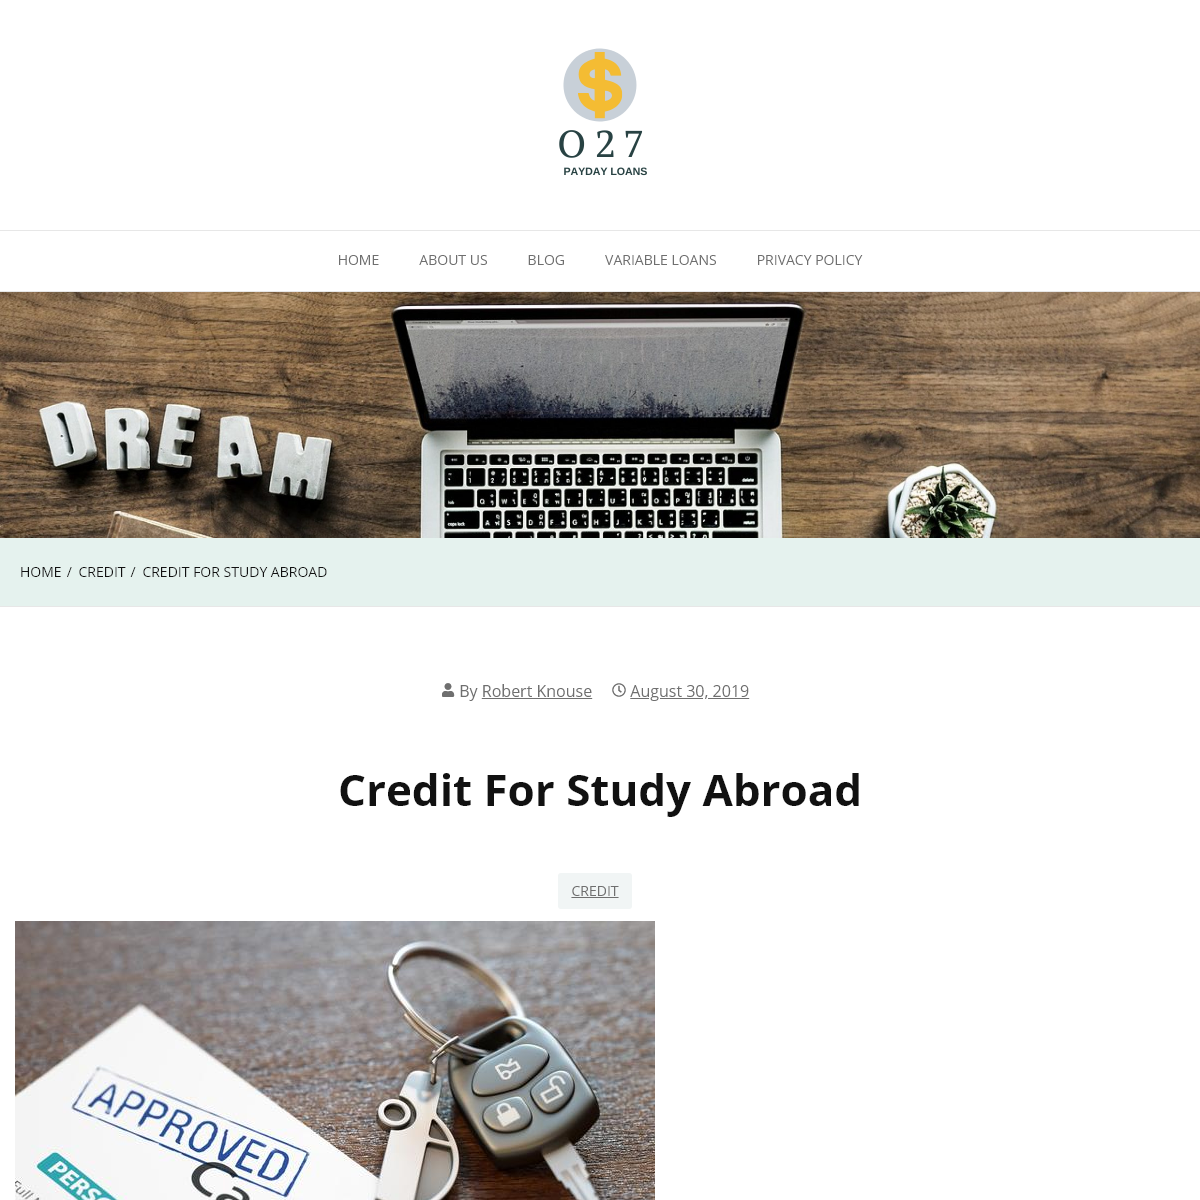 Credit for study abroad